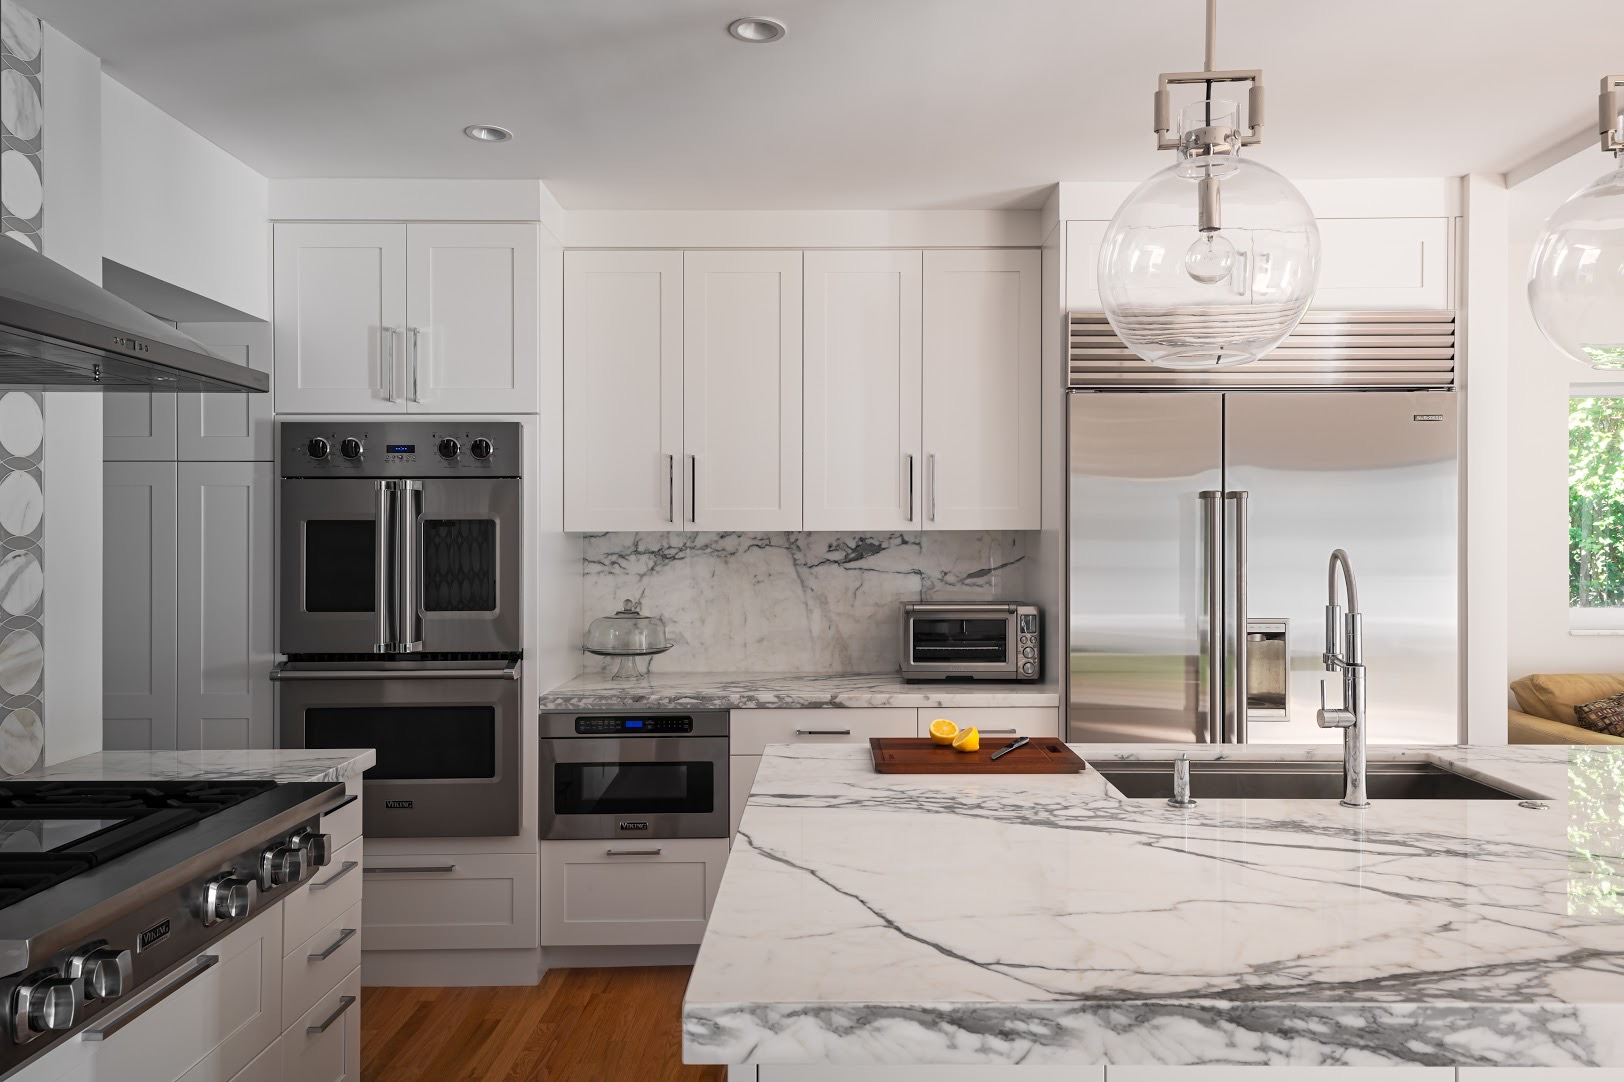 Kitchen Design for Homes in Palmetto Bay, Coral Gables, Kendall, Key Largo, Miami, and Pinecrest